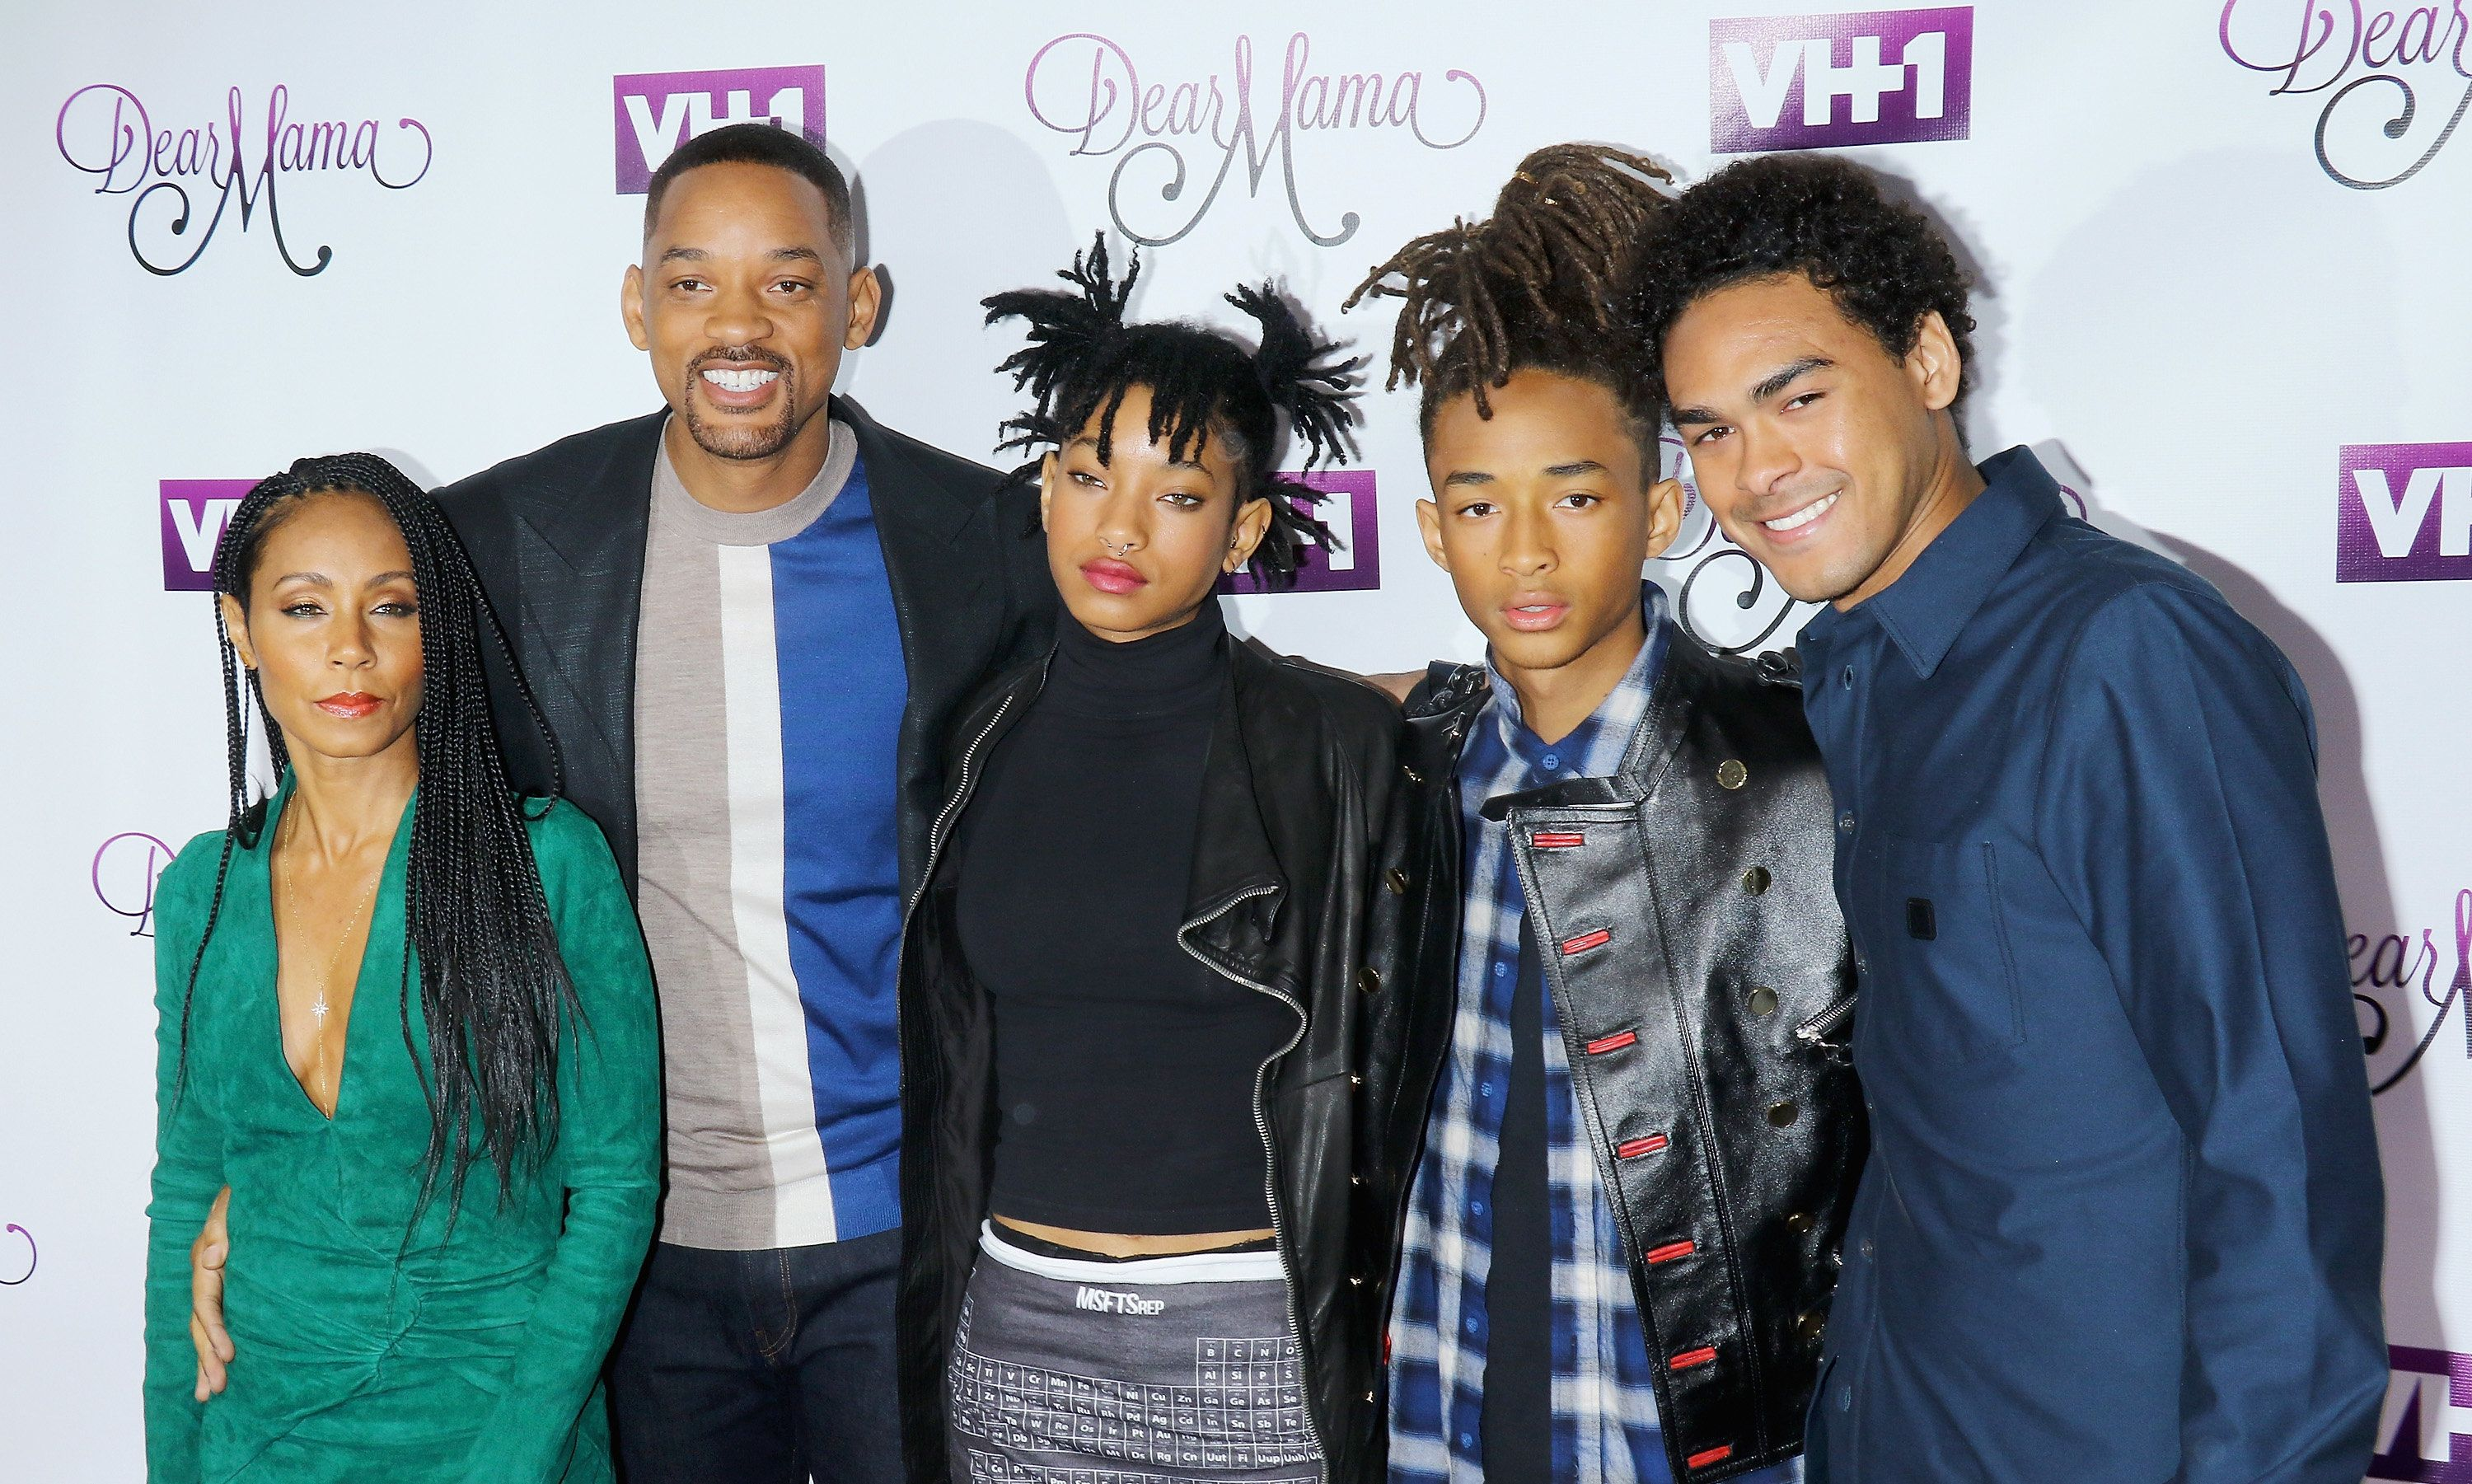 NEW YORK, NY - MAY 03: (L-R) Actors Jada Pinkett Smith, Will Smith, singer/model Willow Smith, actors Jaden Smith and Trey Smith attend the VH1's 'Dear Mama' taping at St. Bartholomew's Church on May 2, 2016 in New York City.  (Photo by Jim Spellman/WireImage)